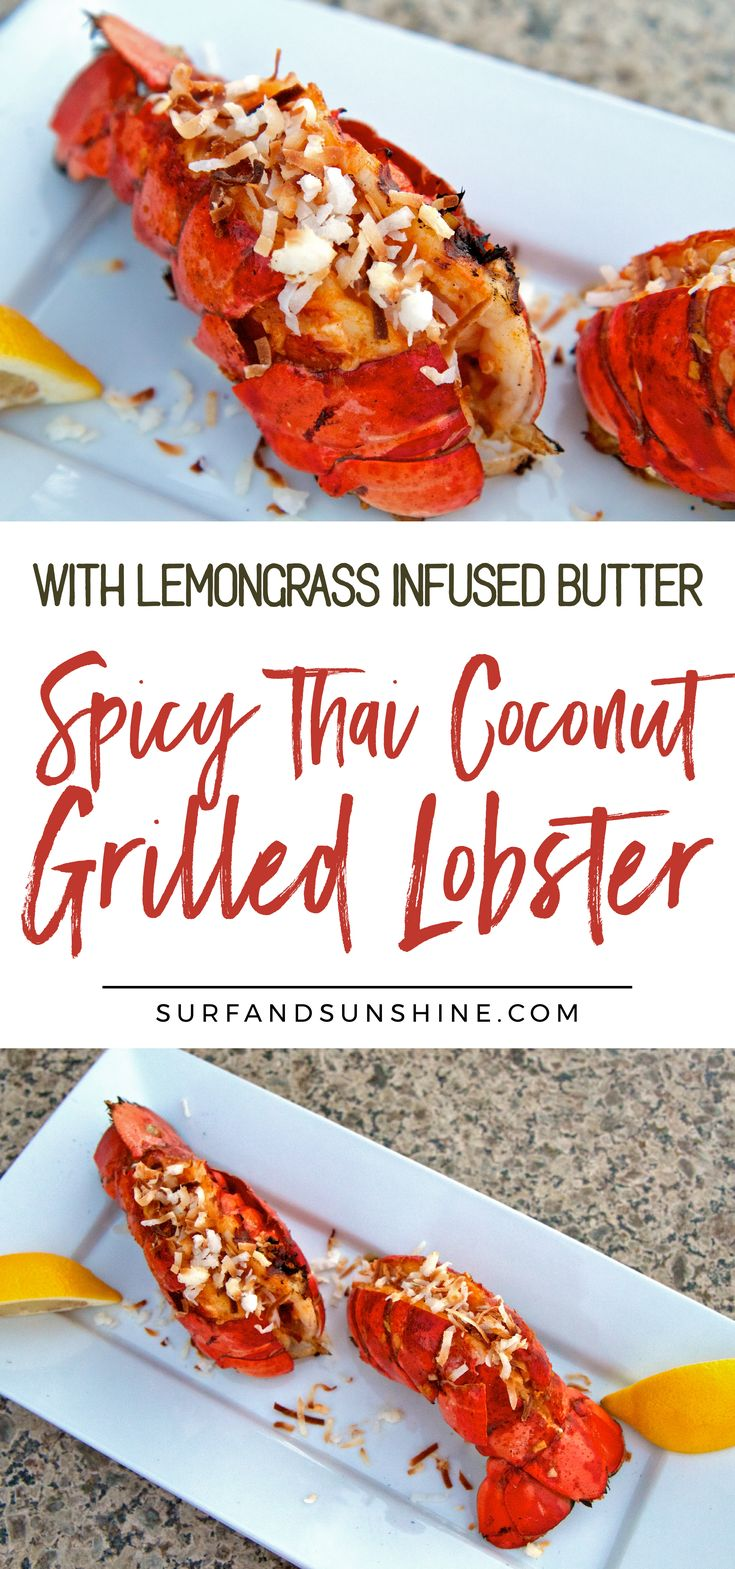 A Thai inspired grilled lobster recipe w/sweet toasted coconut and lemongrass infused butter with a hint of sriracha. Simple, looks amazing & tastes even better via @Jeanabeena